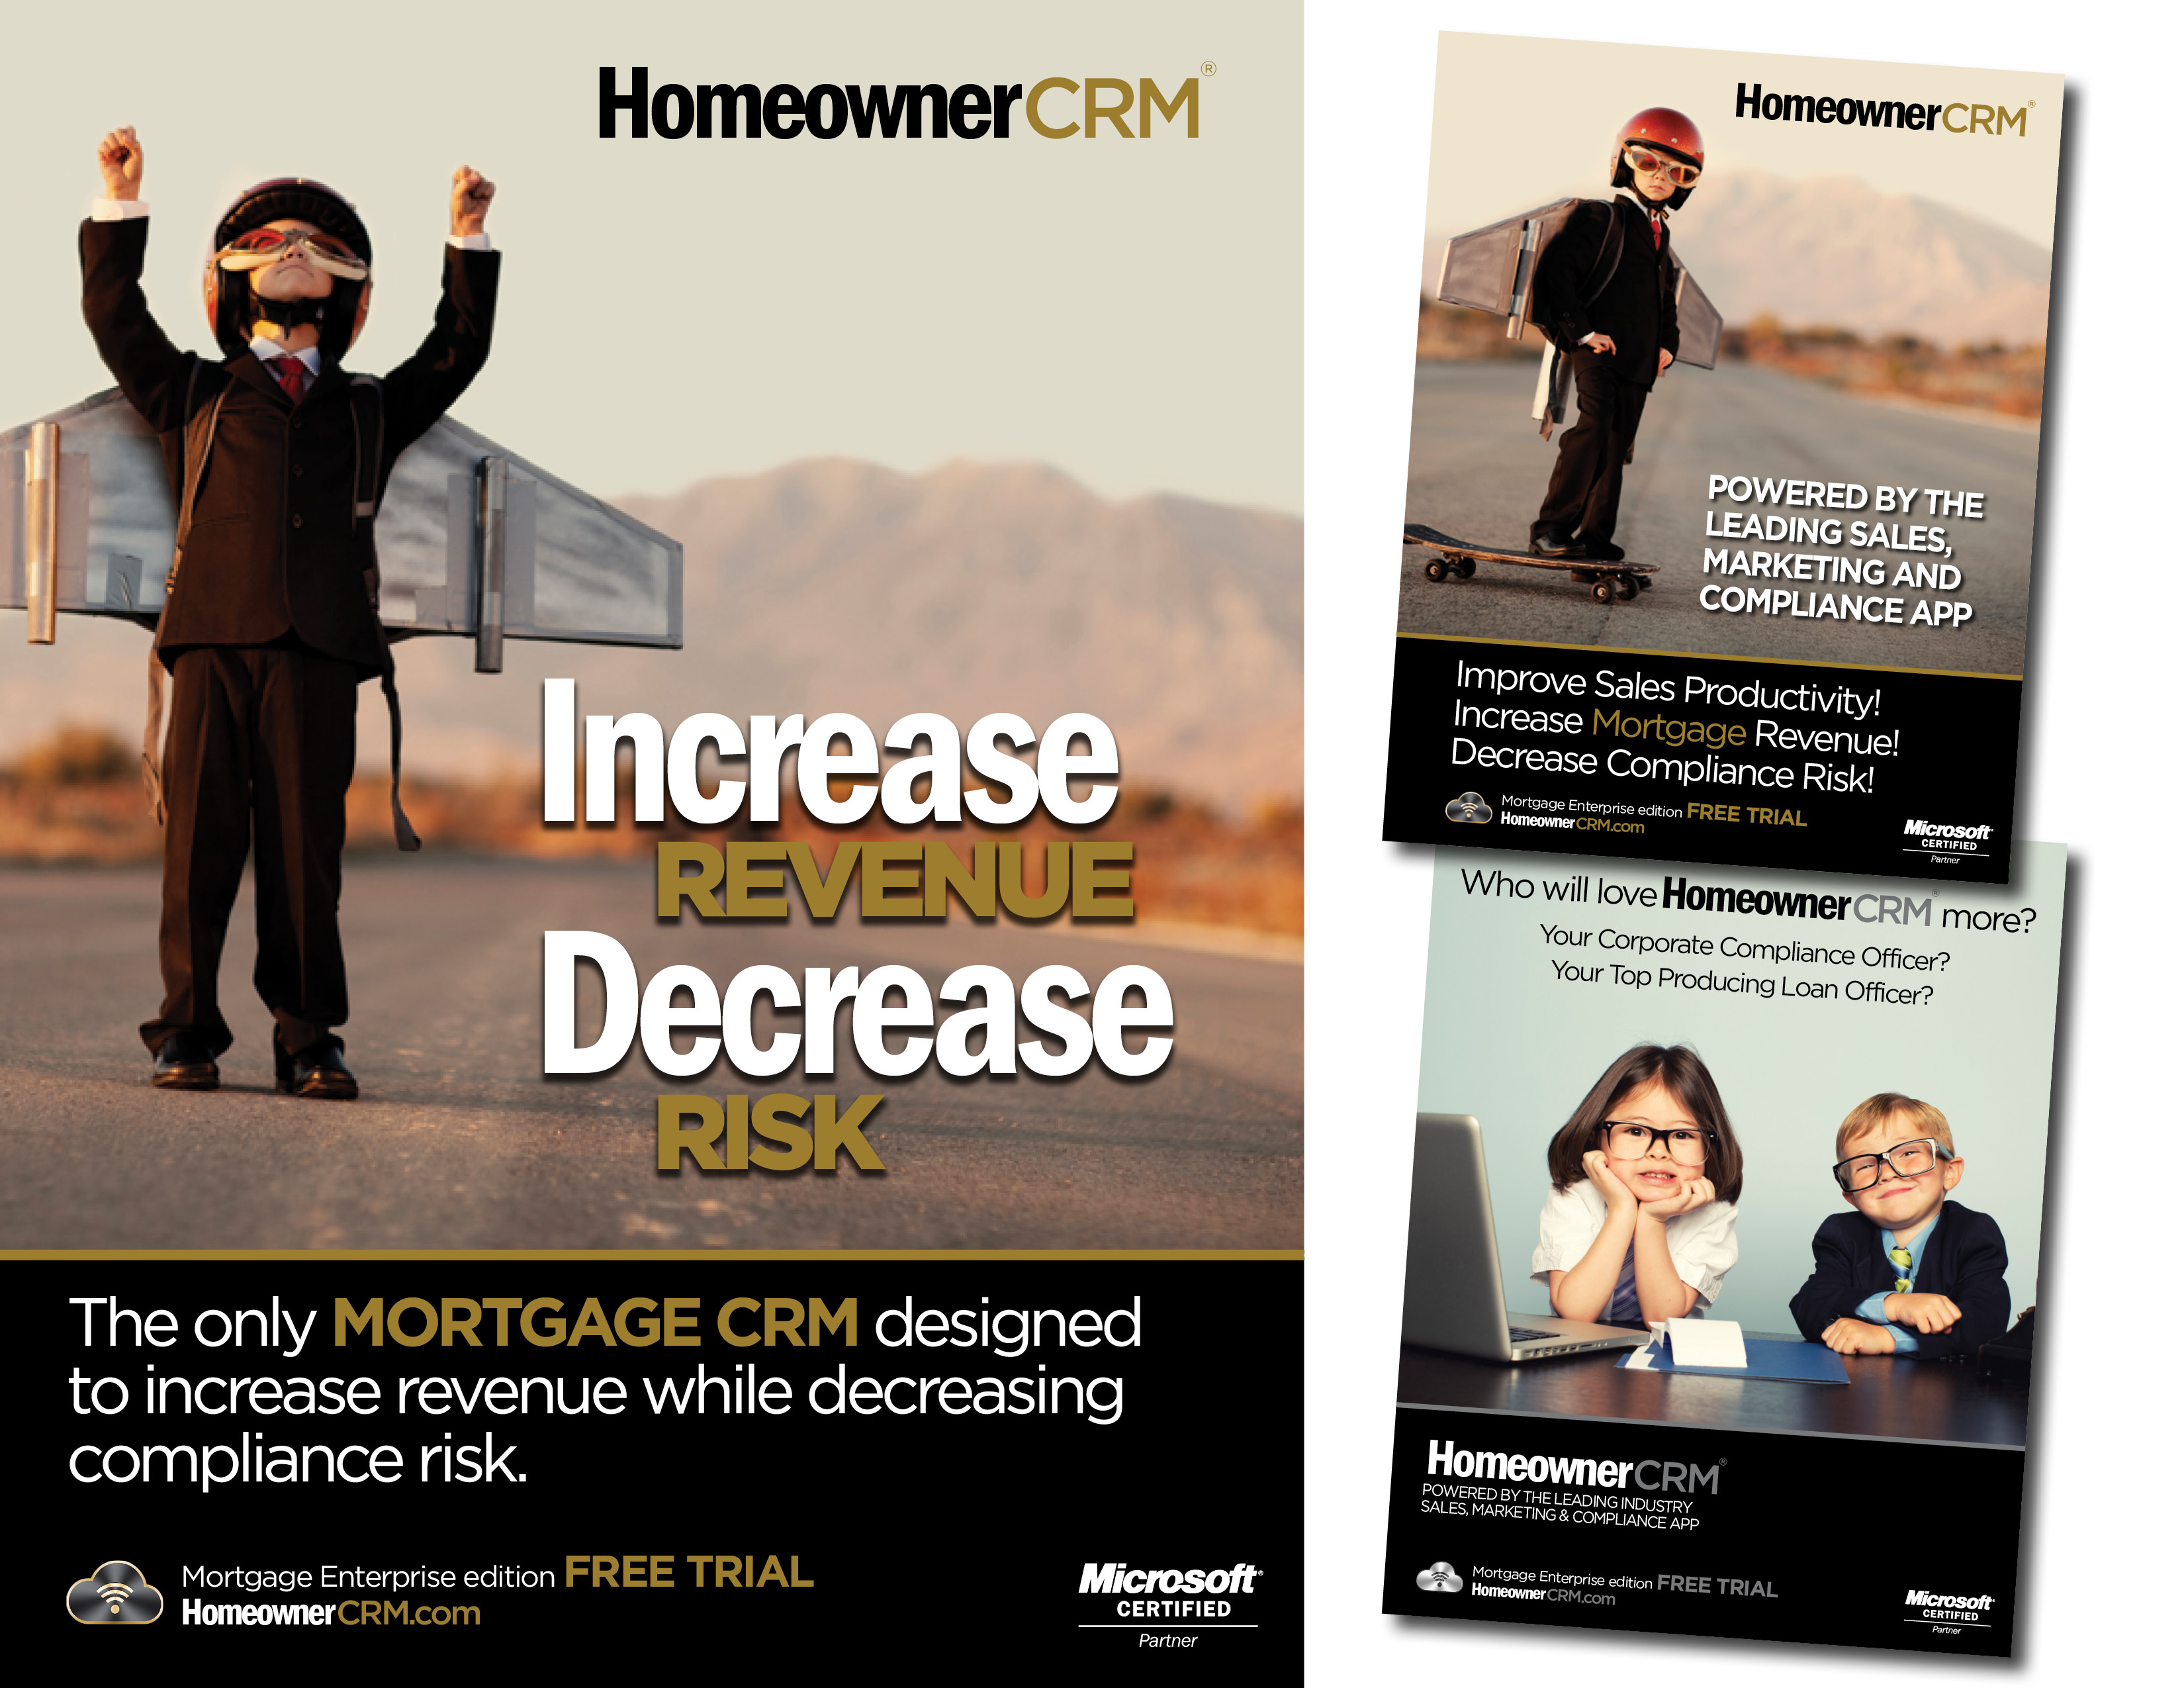 Homeowner CRM Ads